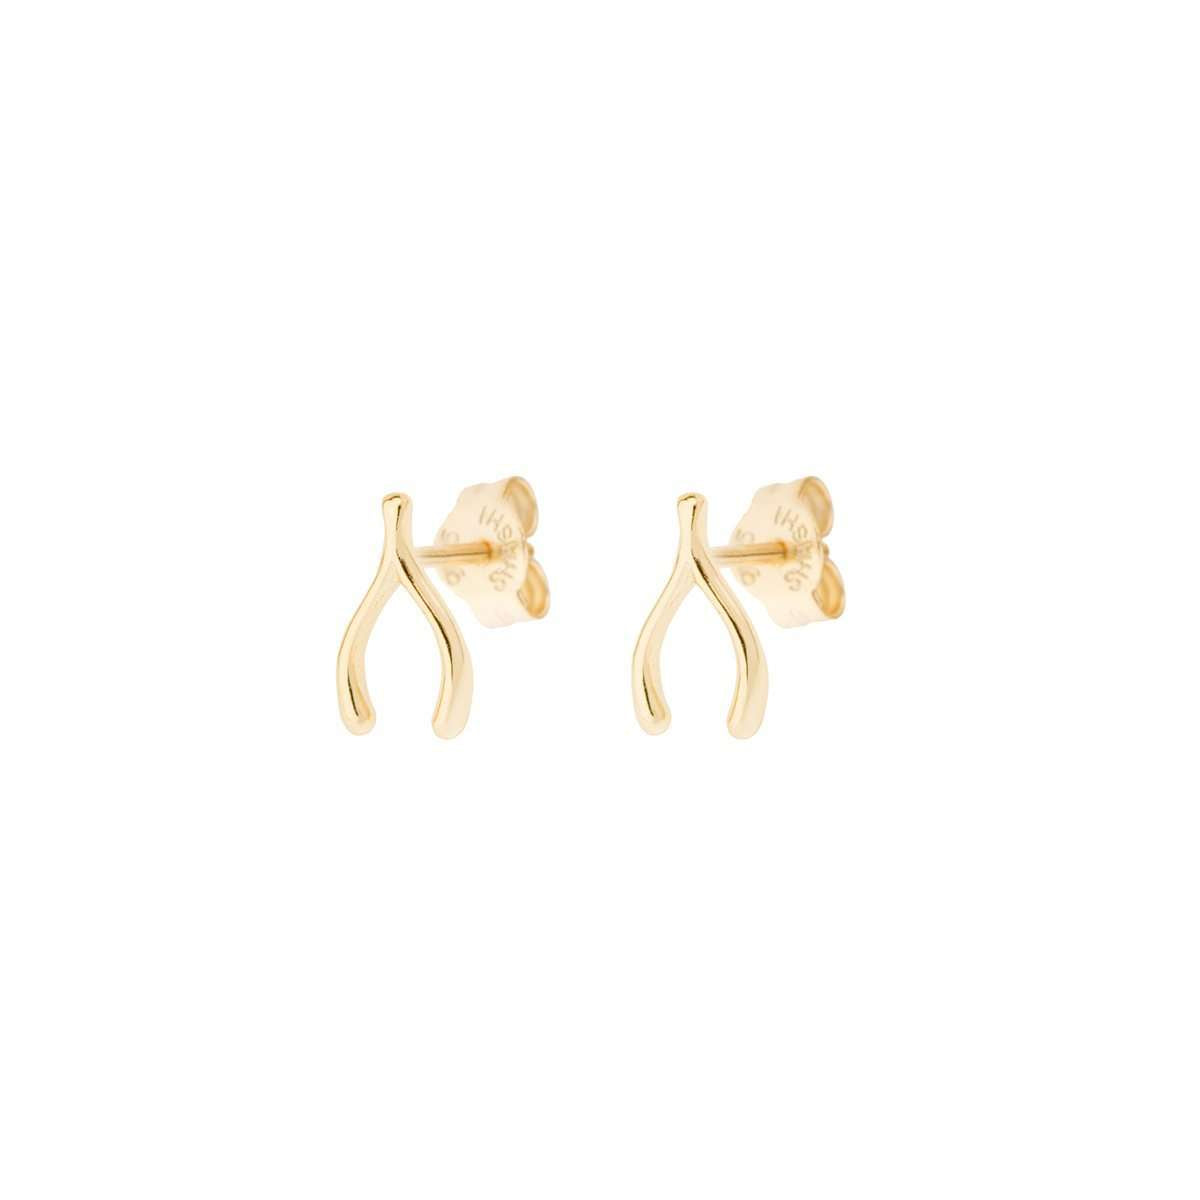 wishbone-studearrings-jewelry